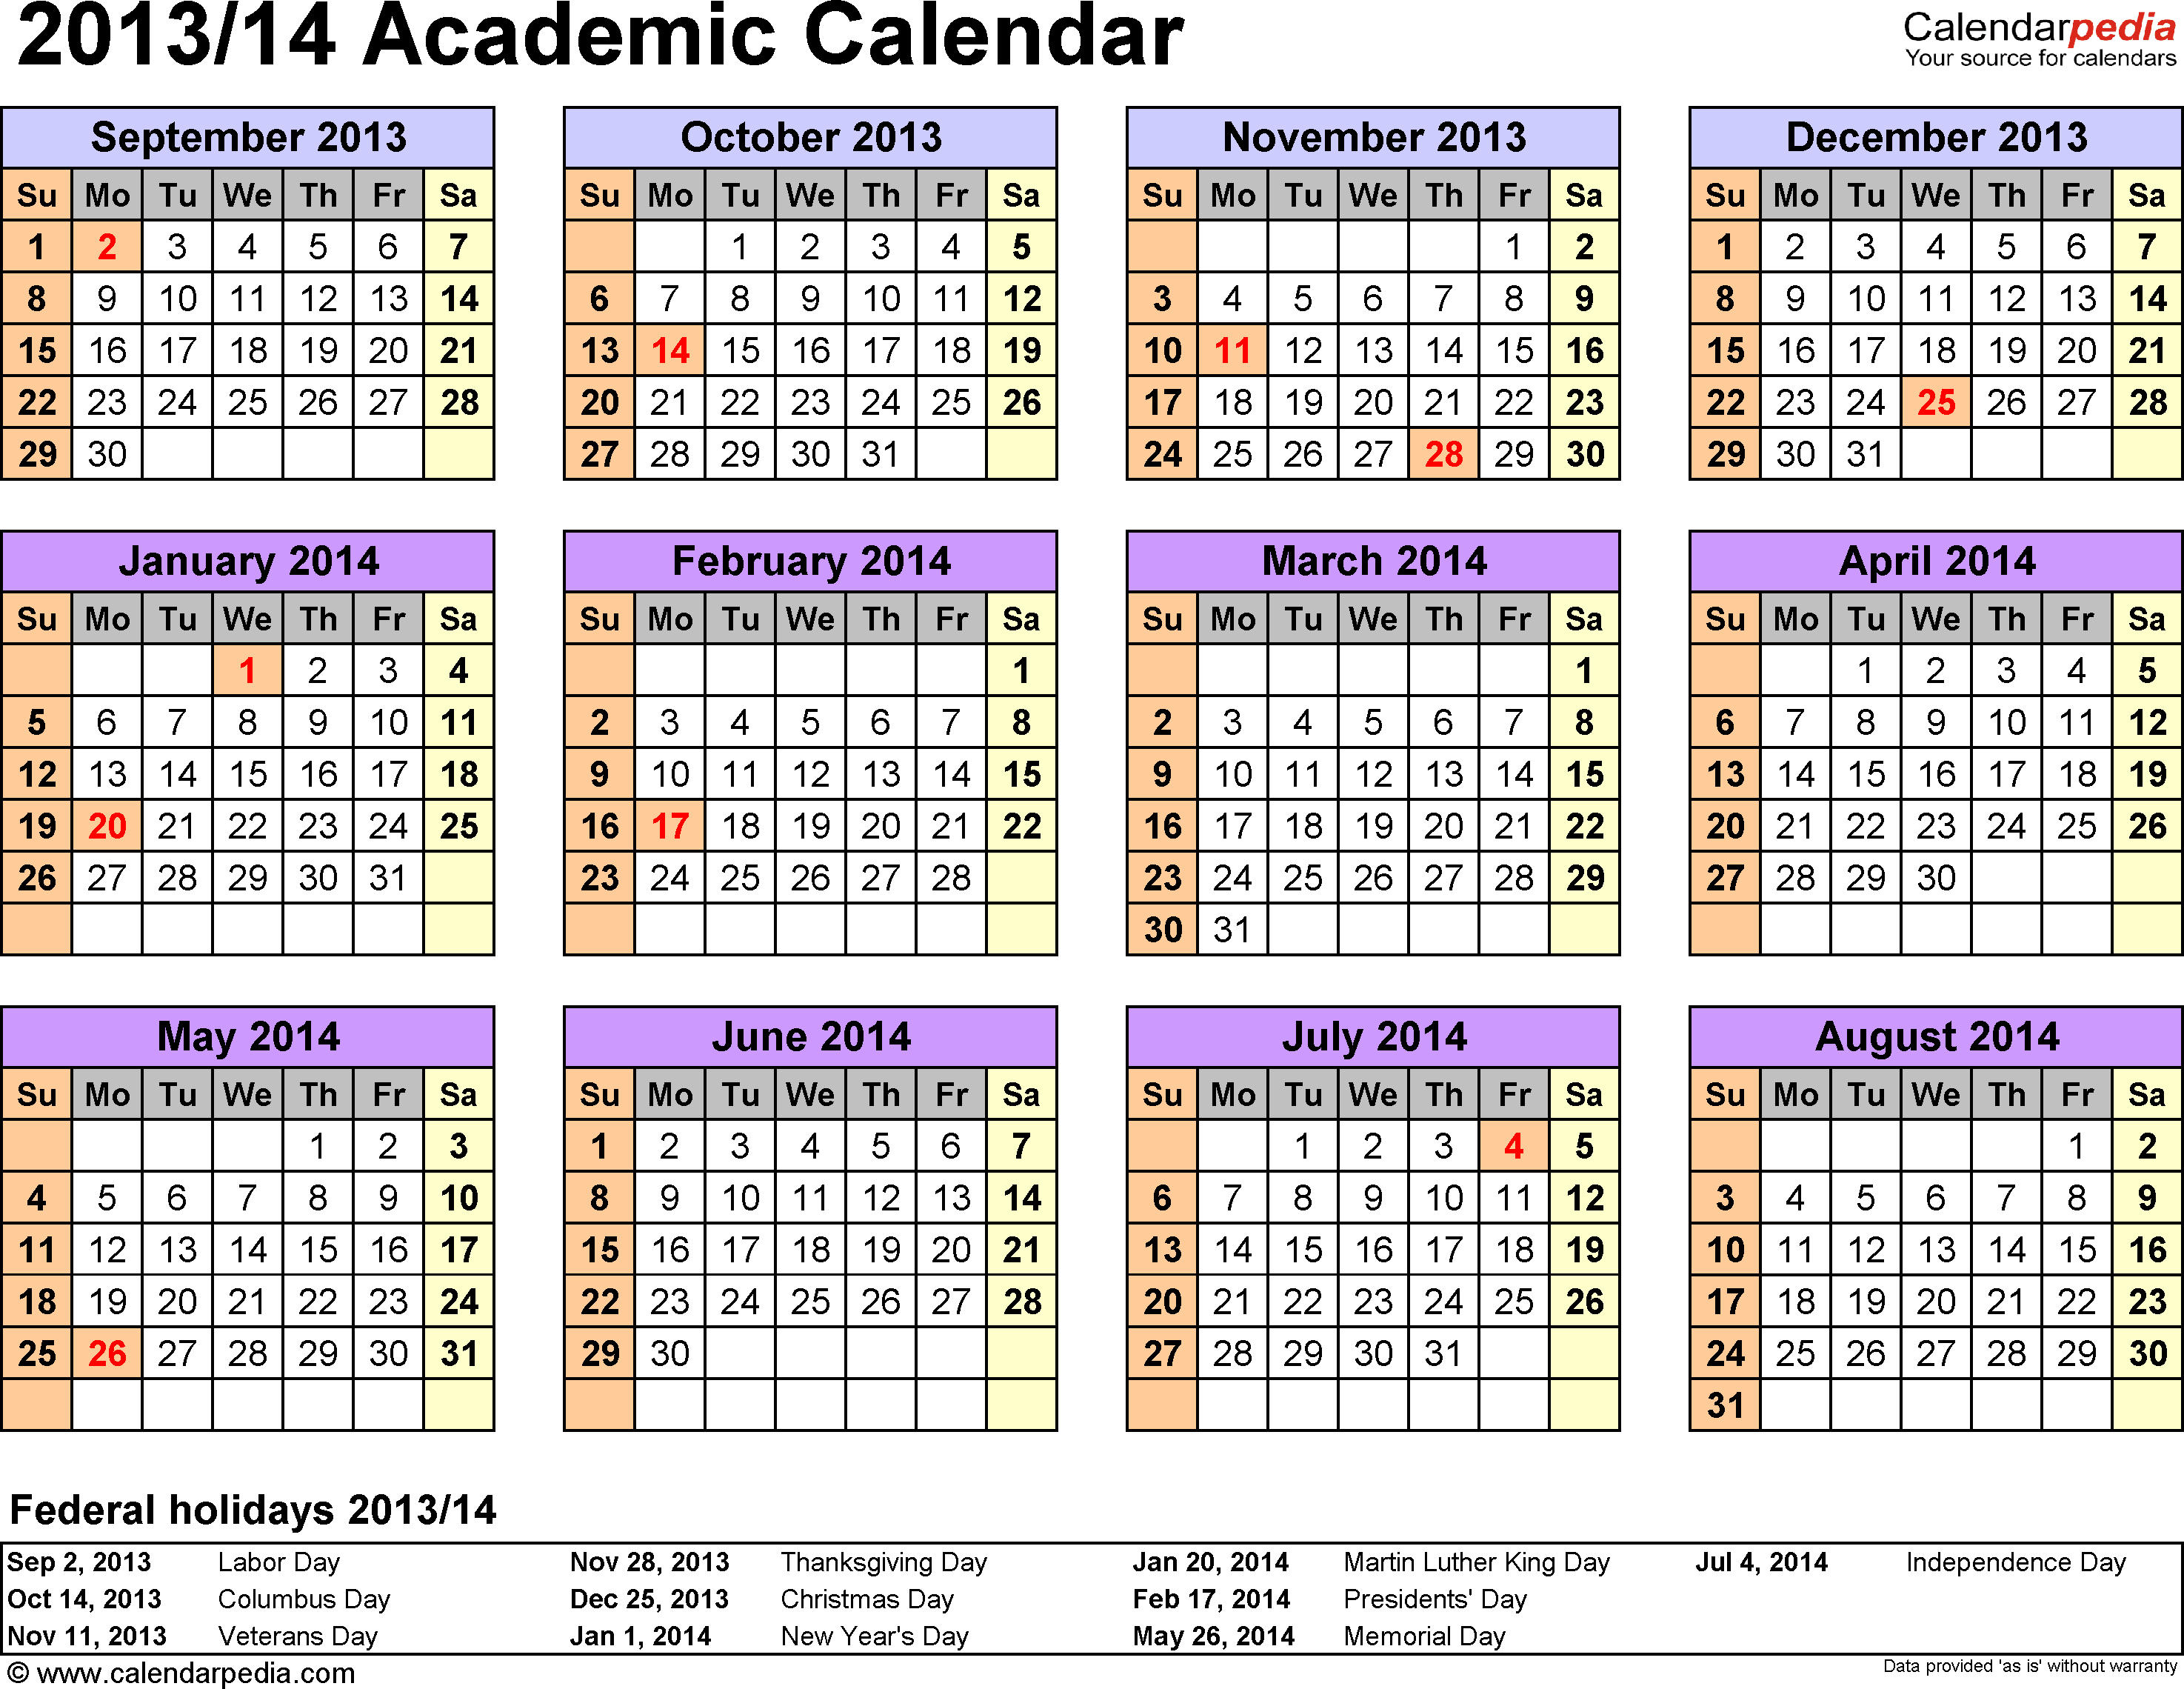 Template 3: Academic calendar 2013/14 for Word, landscape orientation, year at a glance, 1 page